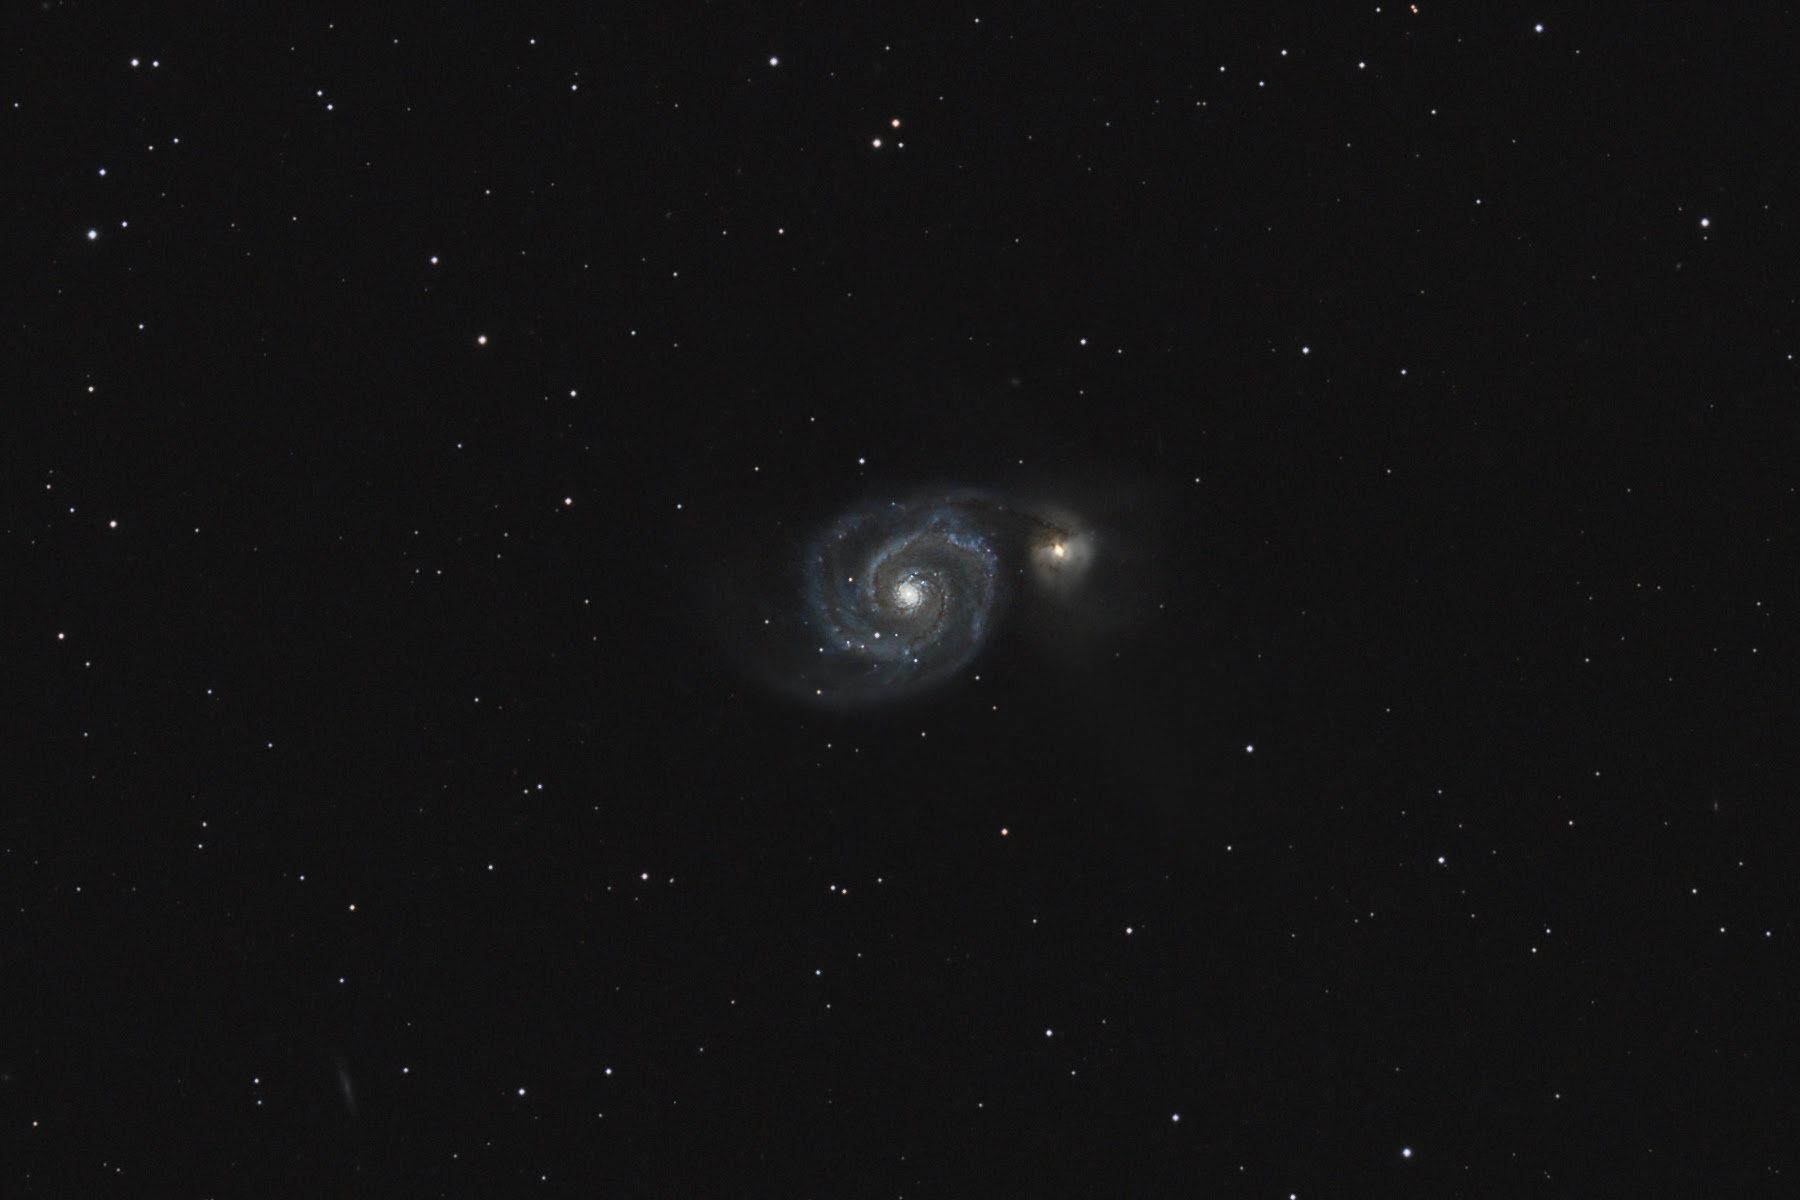 A narrower view of M51, the Whirlpool Galaxy